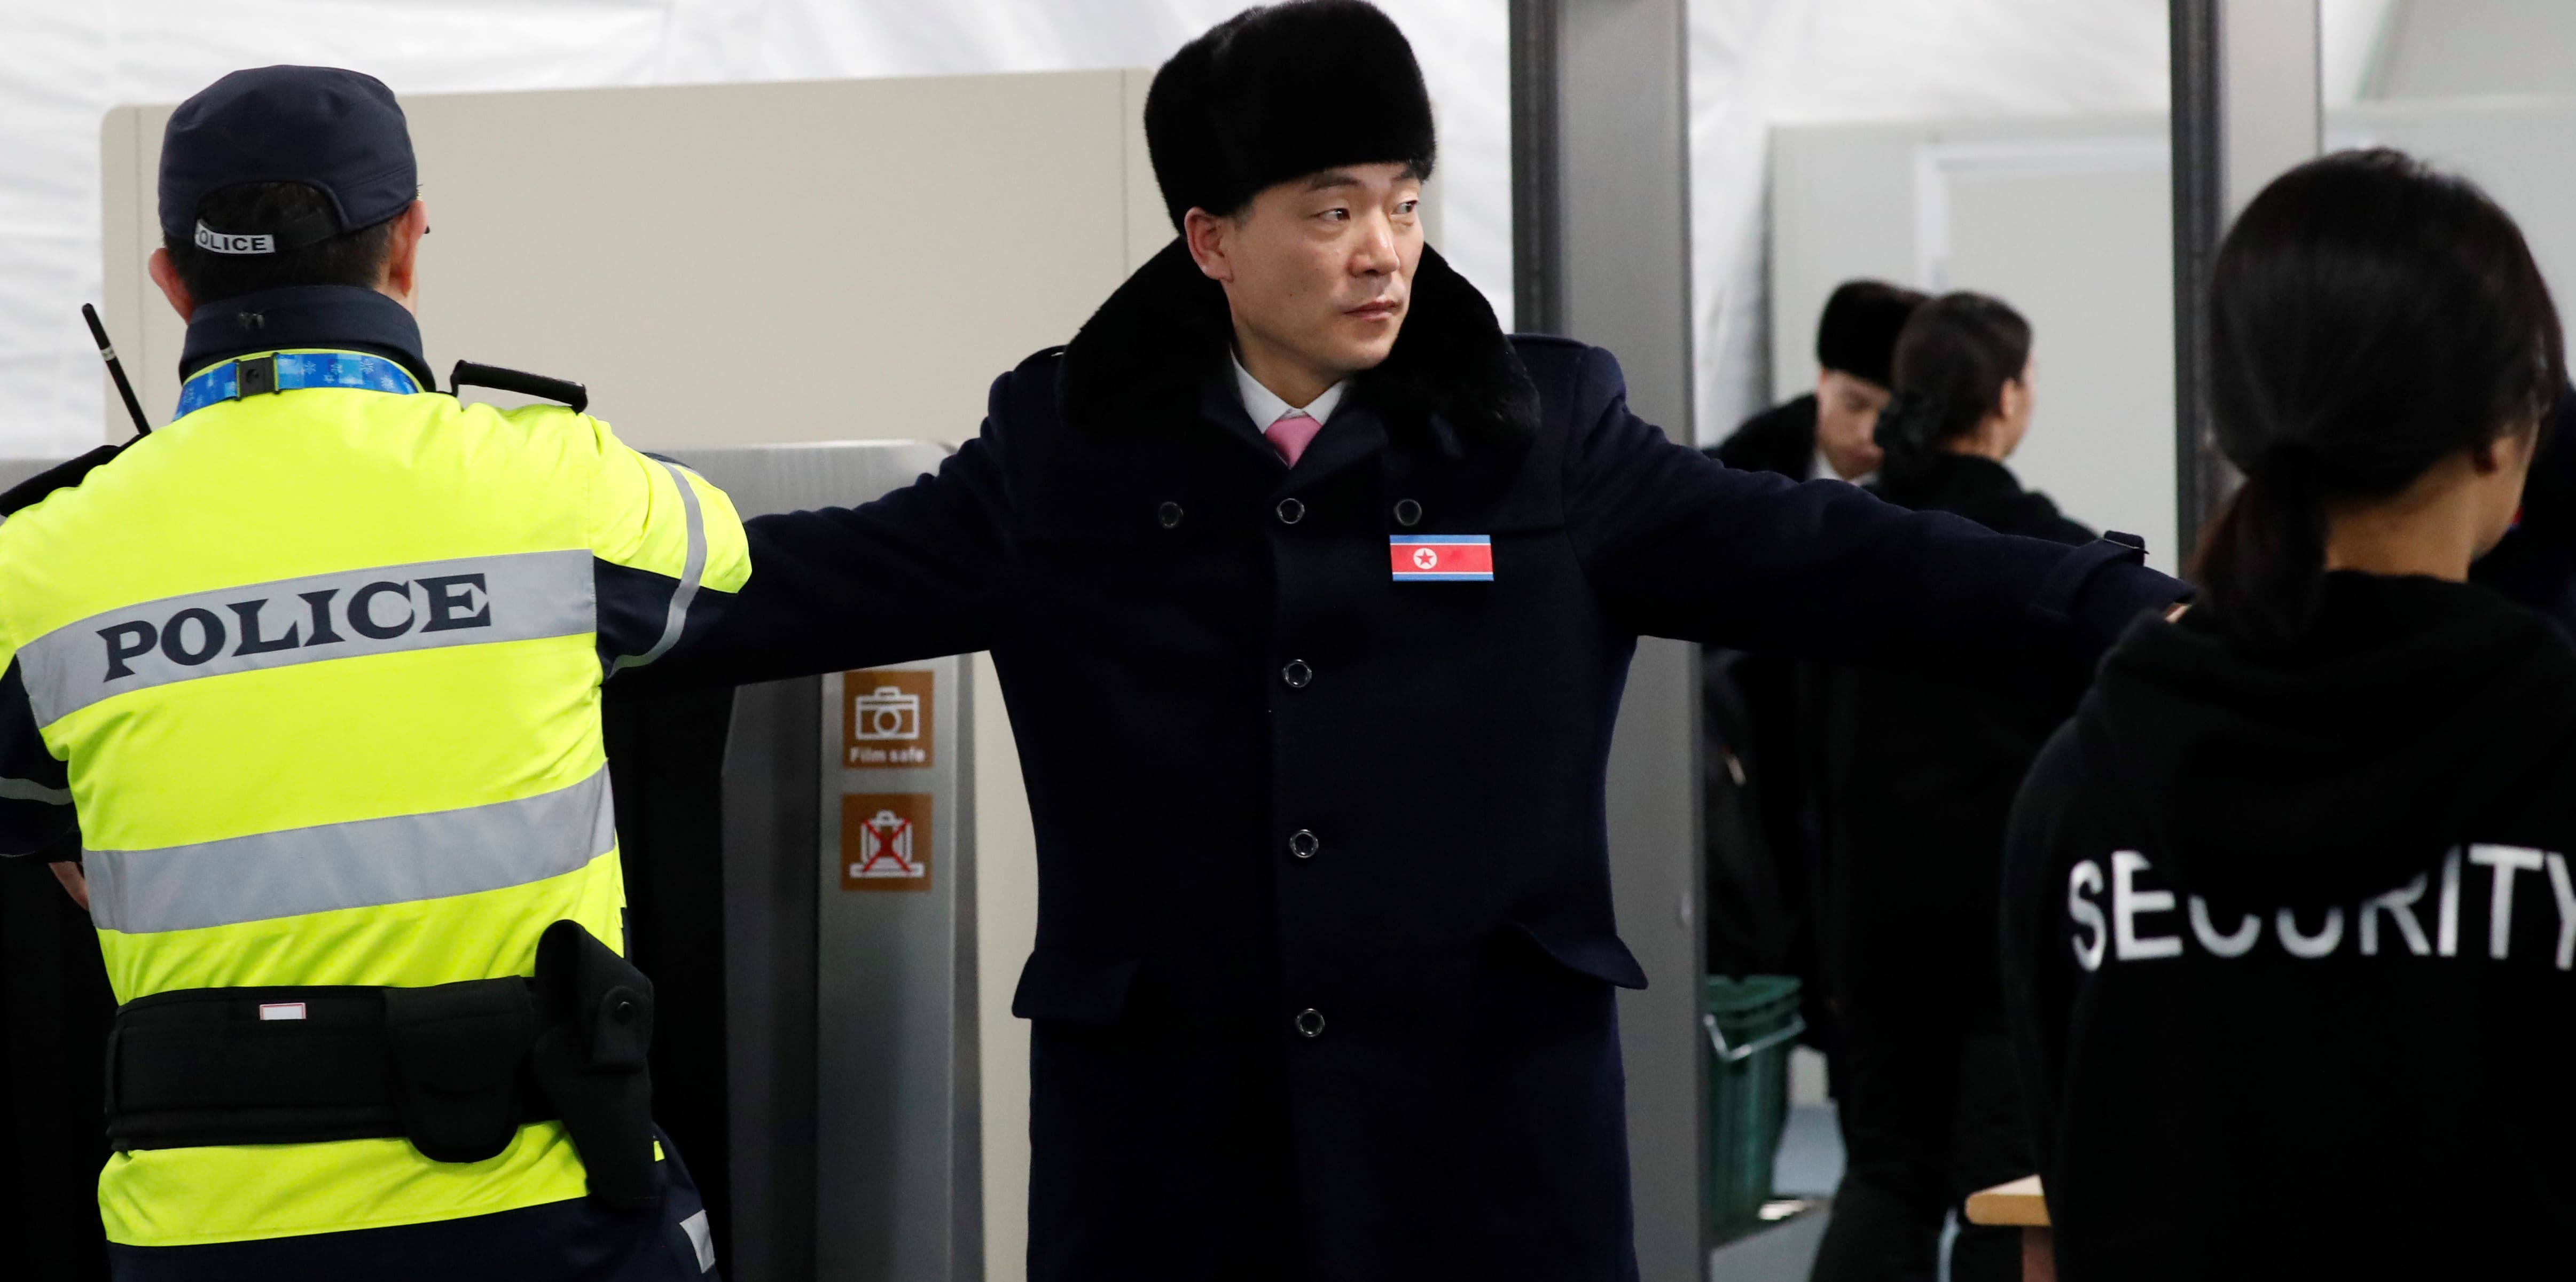 Members of a North Korean delegation arriving at the Olympic Village for the Pyeongchang Olympics, February 2018 (Photo: Getty Images)